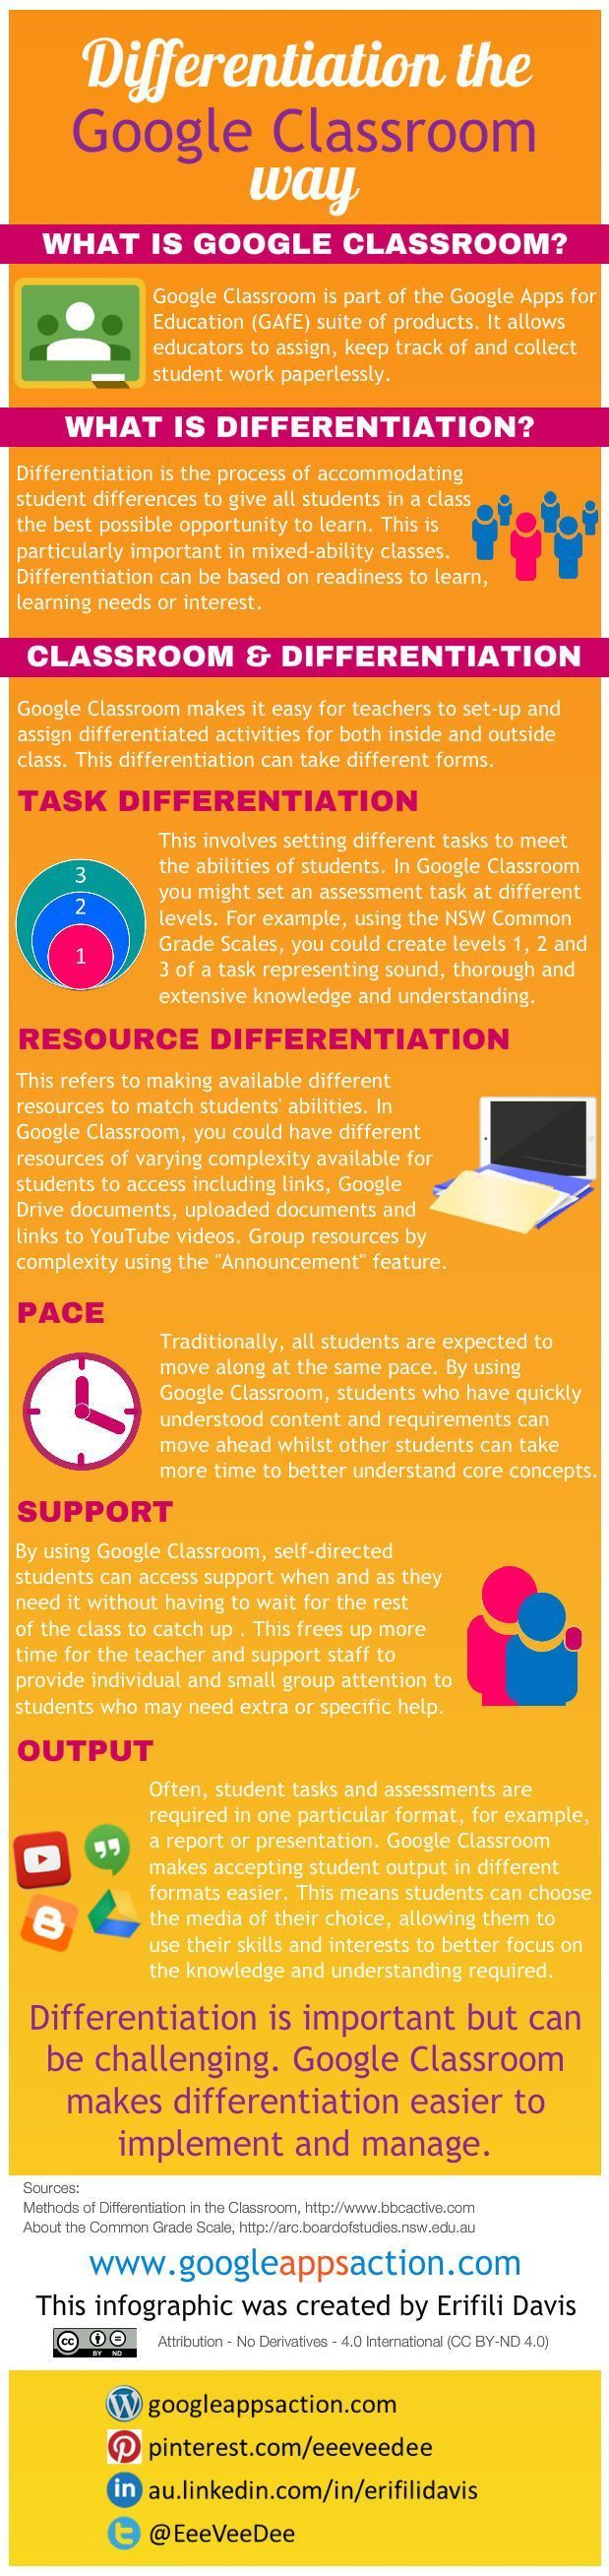 Differentiation the Google Classroom way. Using Google Classroom (part of the Google Apps for Education suite) to better meet students' needs and abilities.